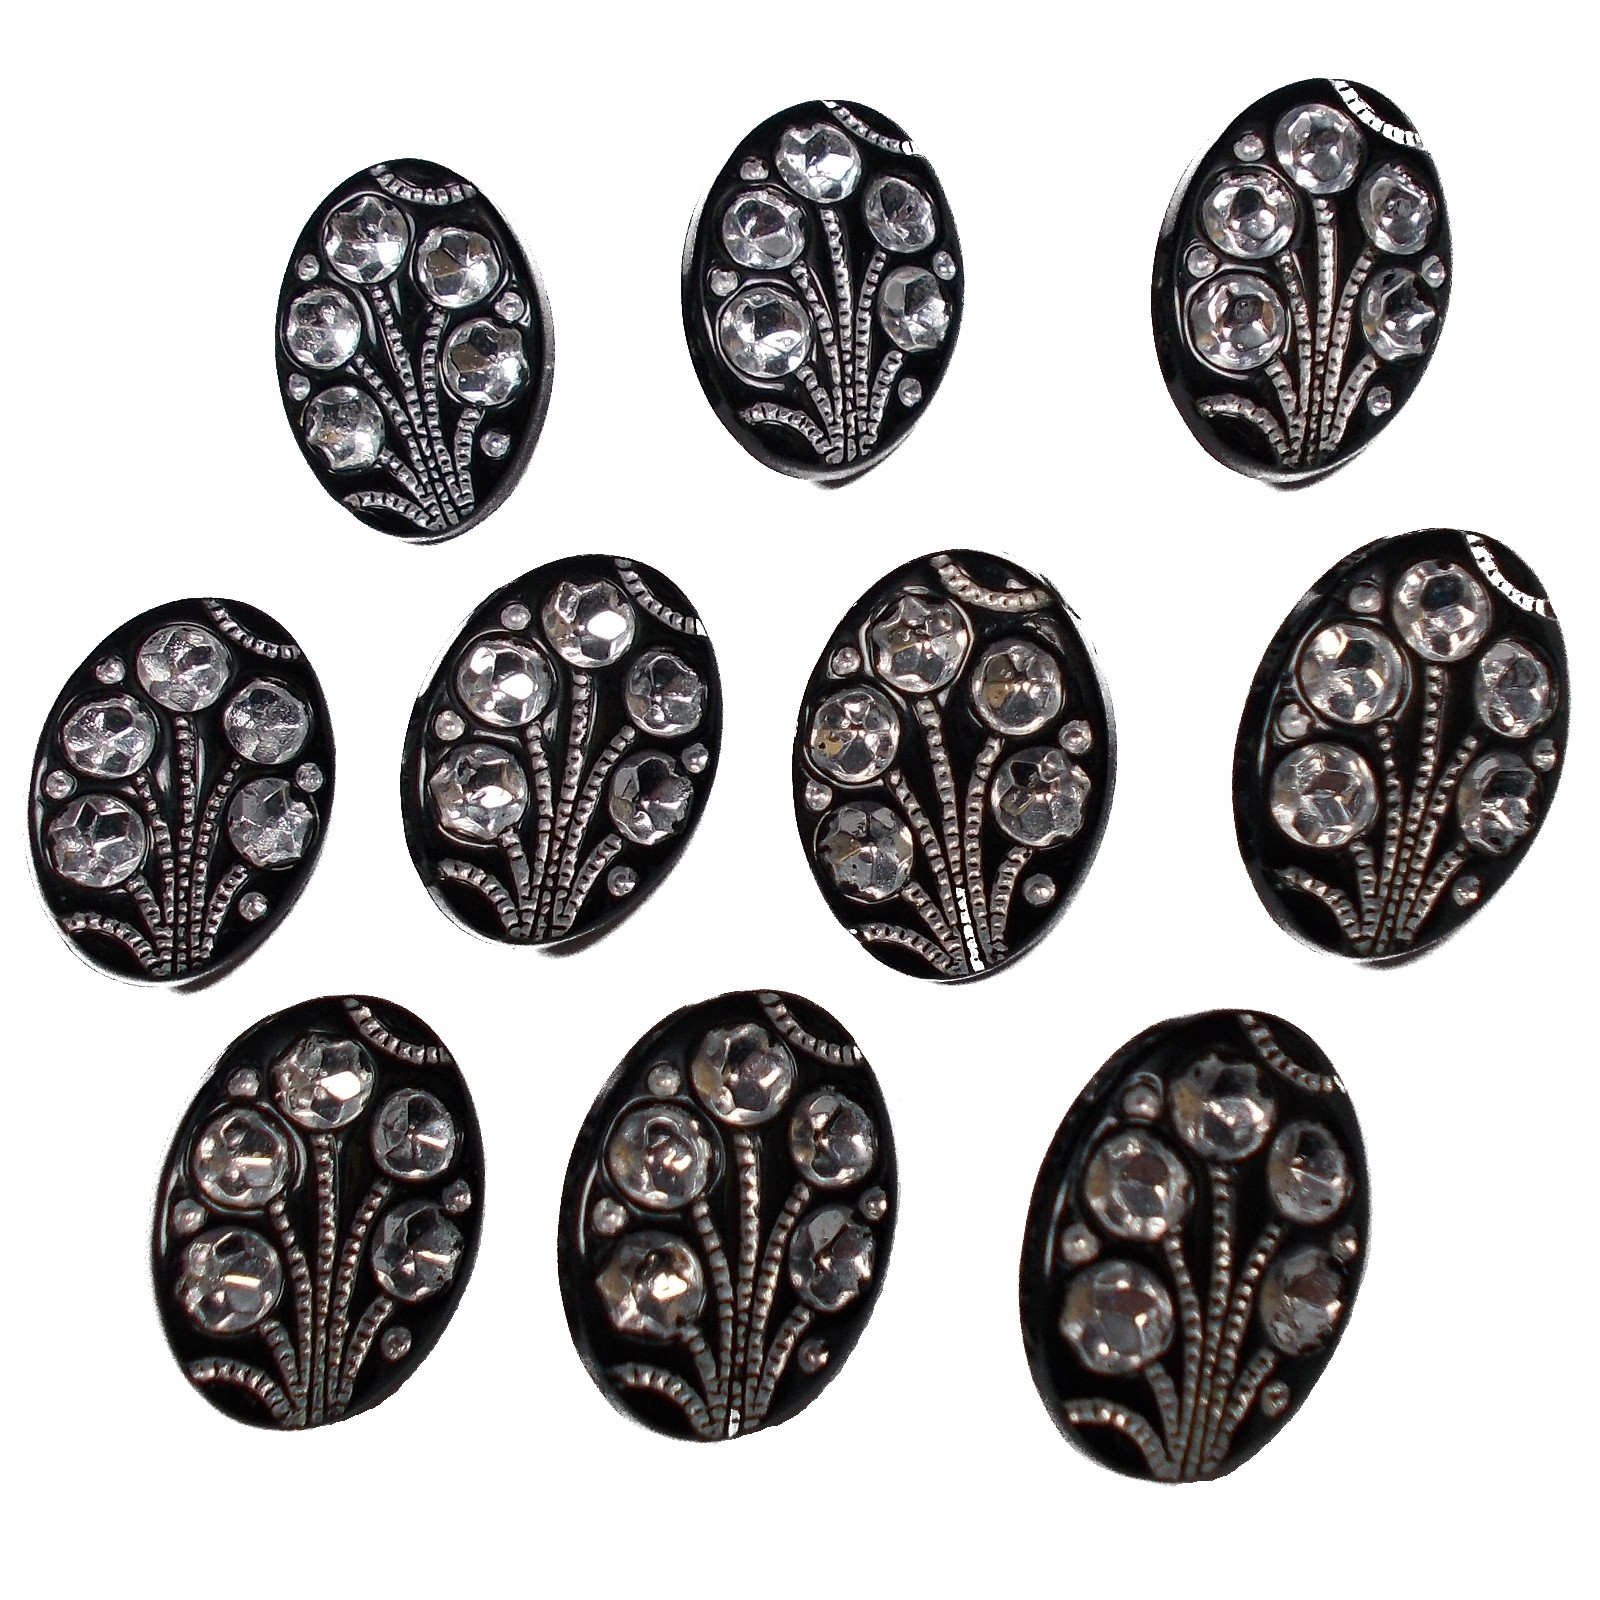 Black Diamante Art Deco Style Buttons 15mm x 10mm Oval Pack of 10